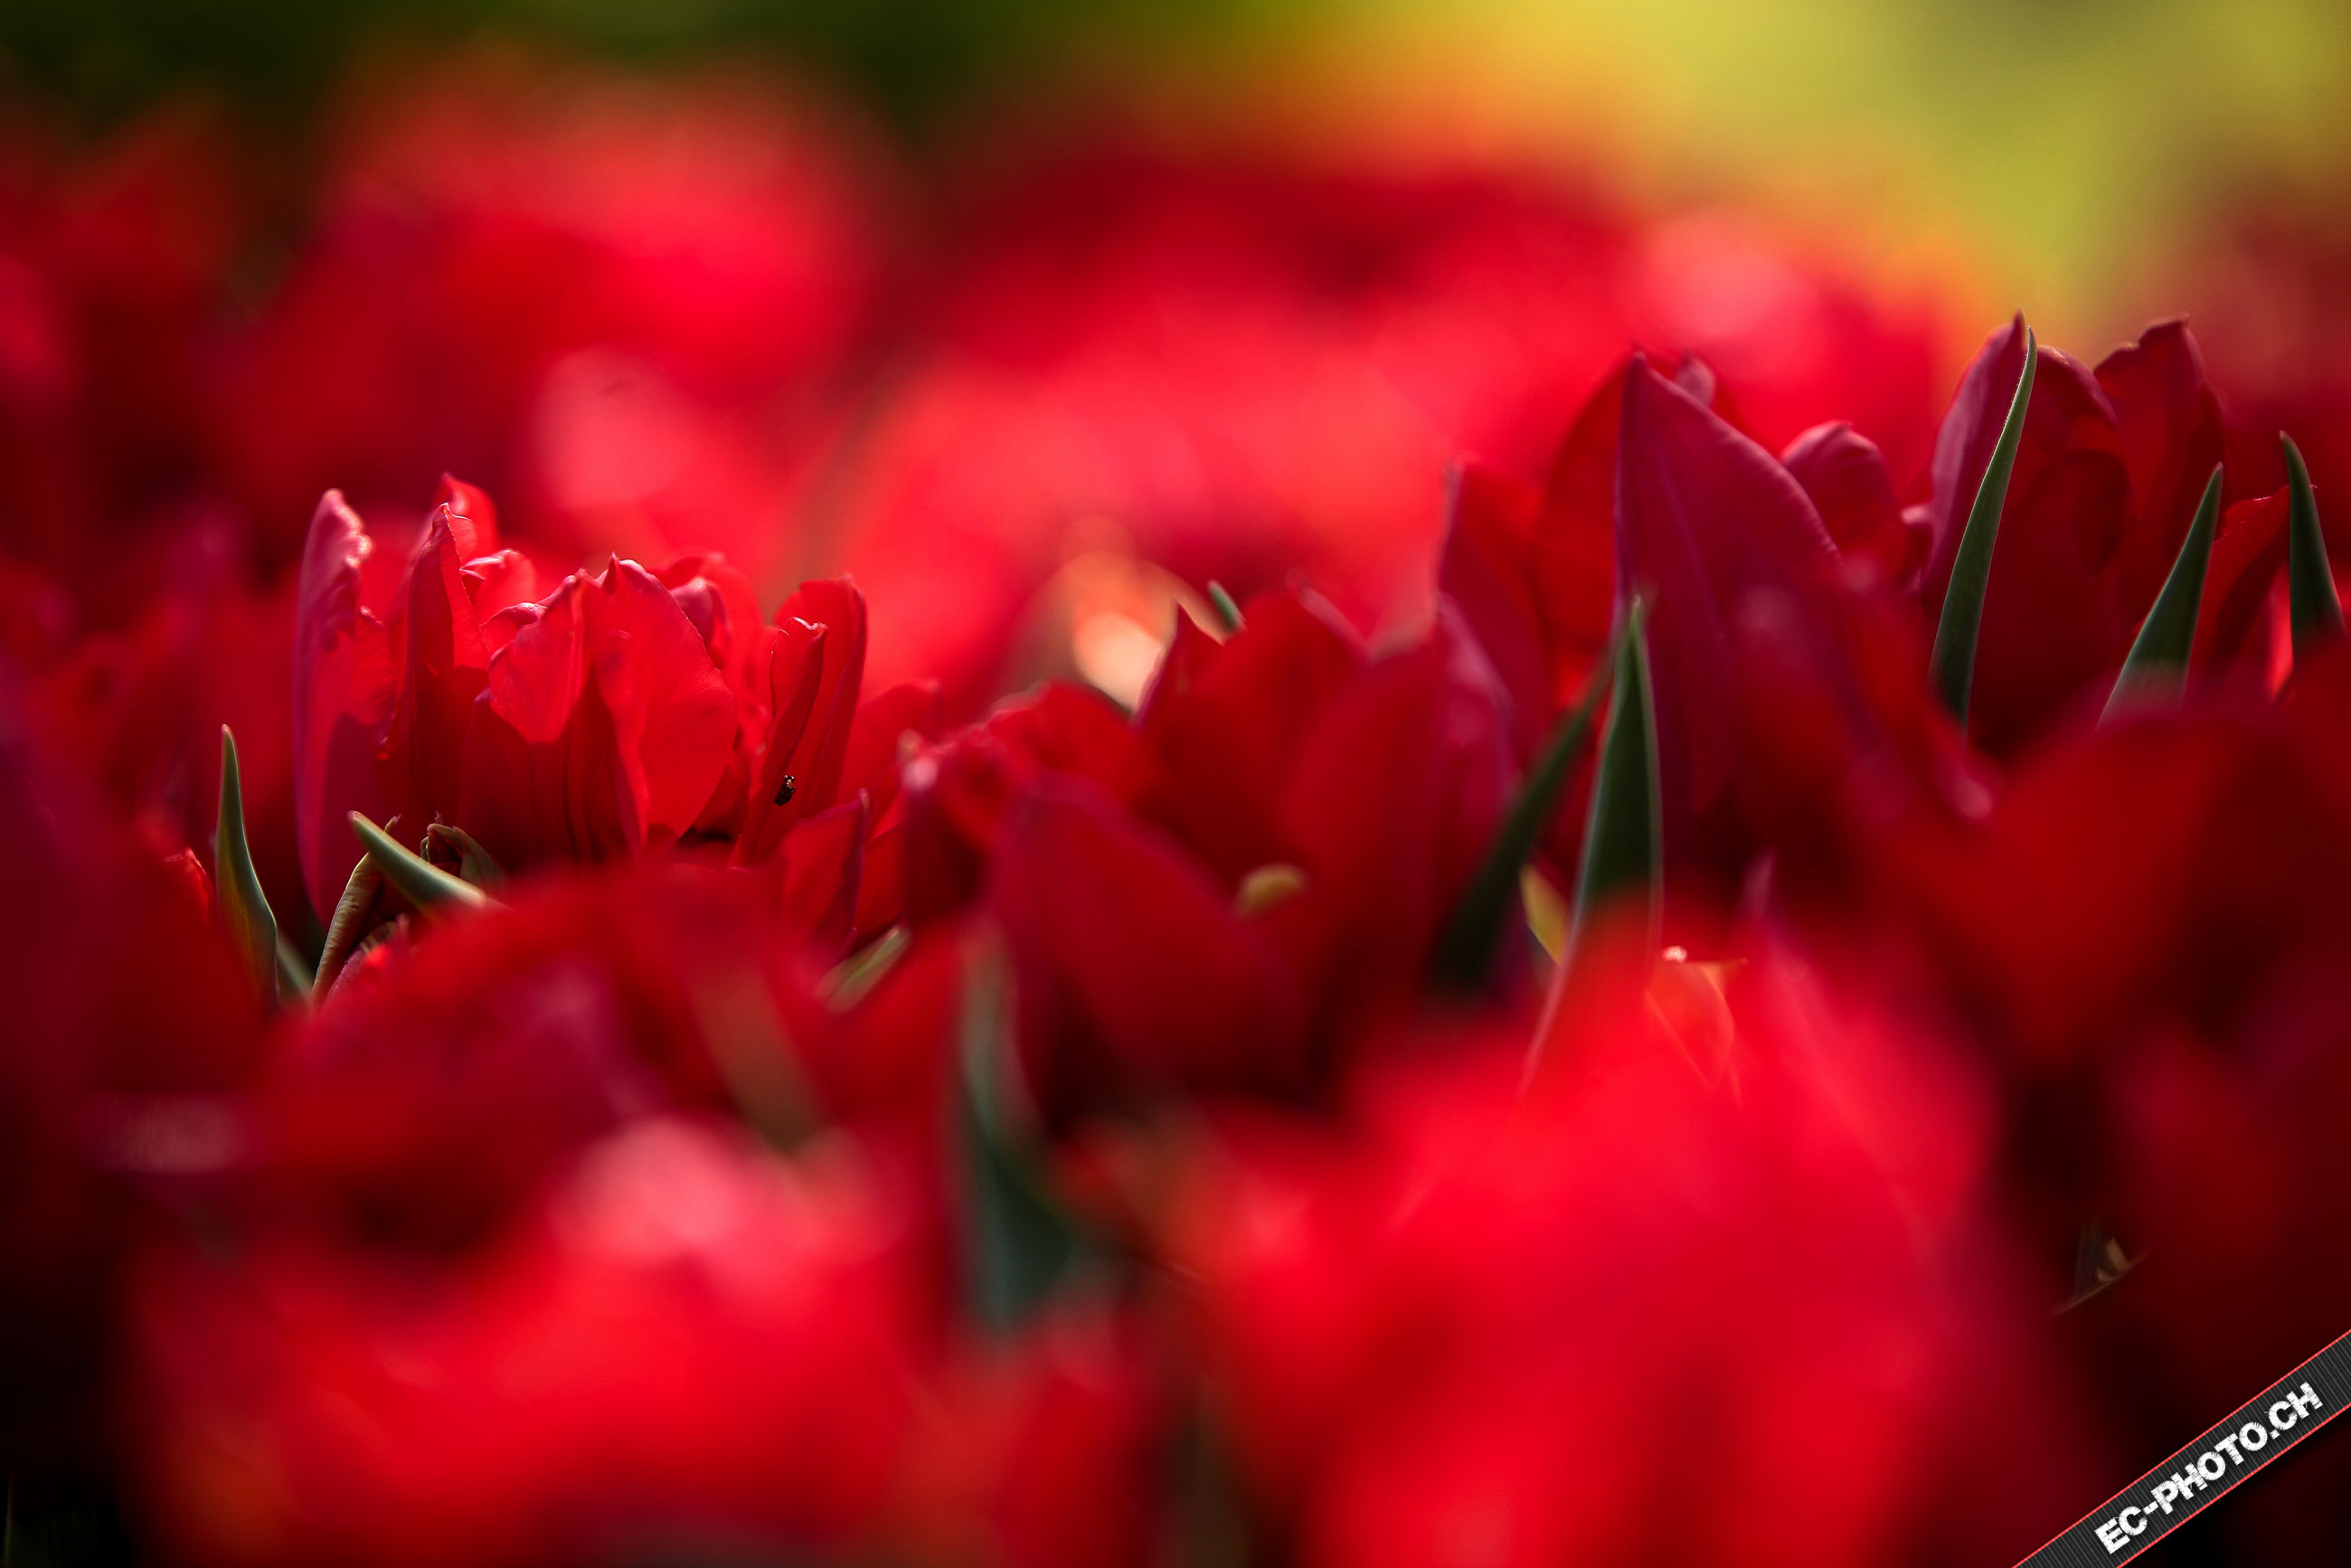 red, close-up, selective focus, focus on foreground, growth, freshness, beauty in nature, season, nature, abundance, backgrounds, vibrant color, no people, fragility, pink color, full frame, day, outdoors, drop, wet